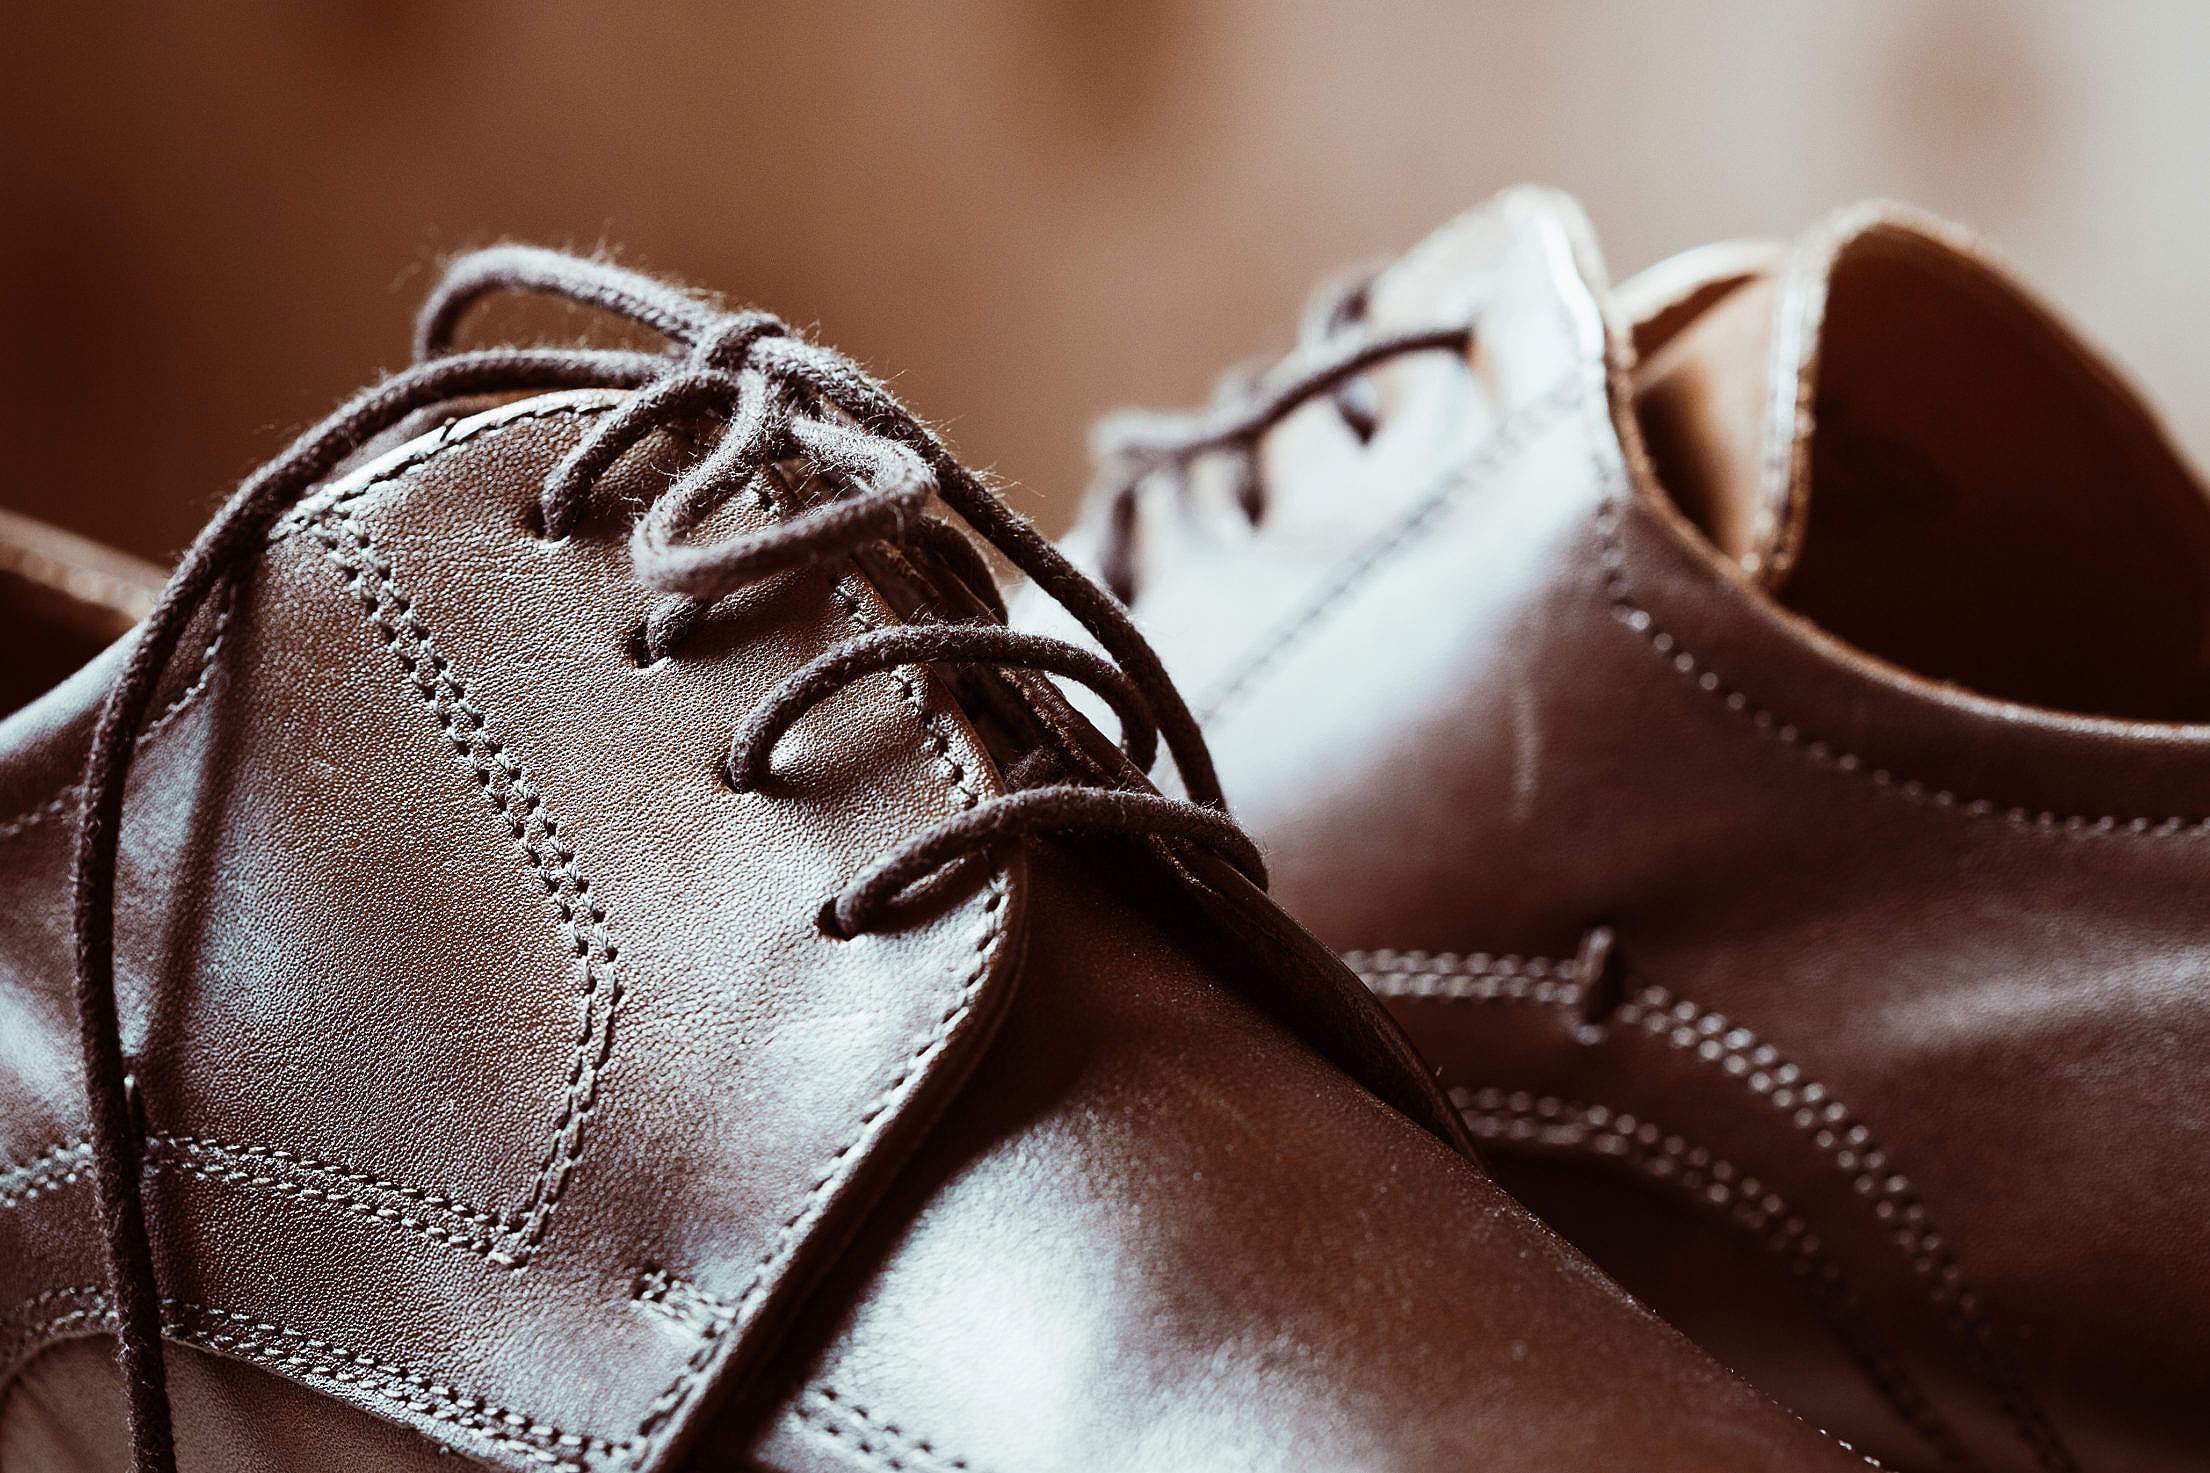 Brown Leather Shoes Shoelaces Close Up #2 Free Stock Photo